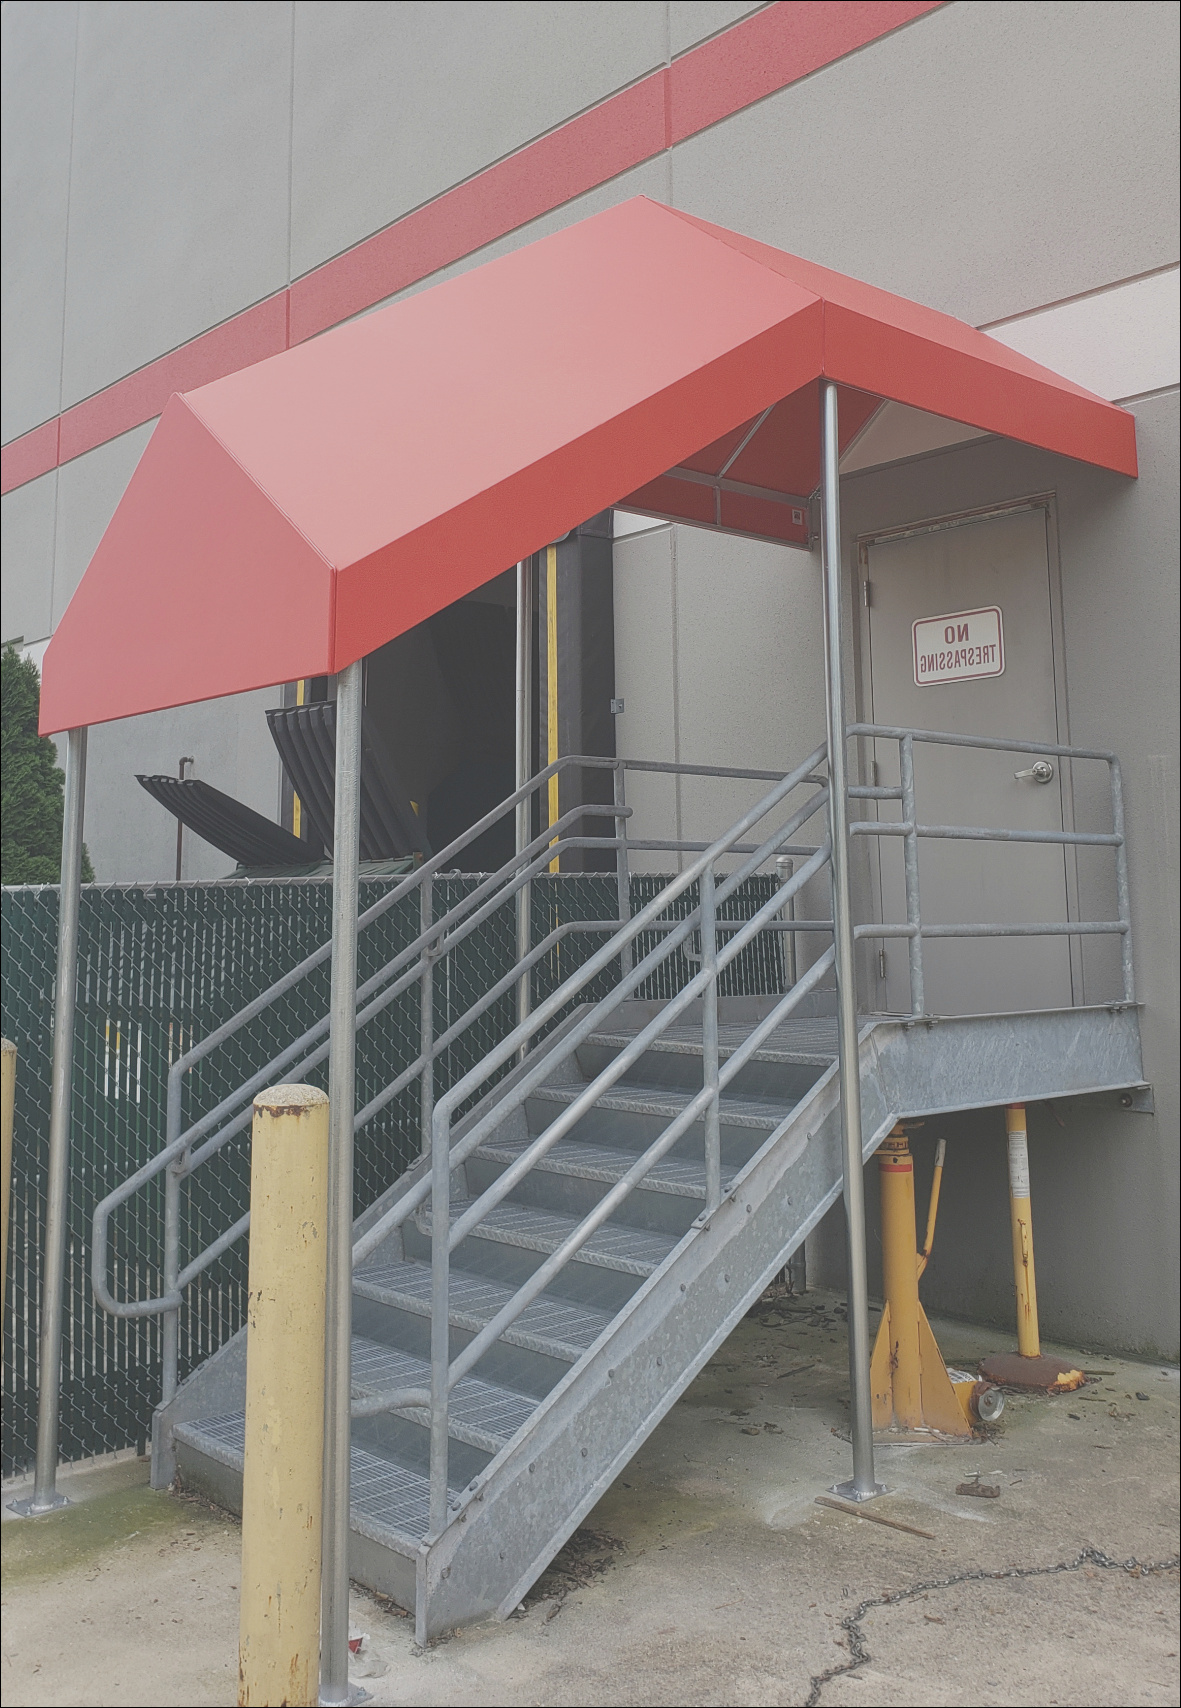 entrance canopy over stairs on a mercial building